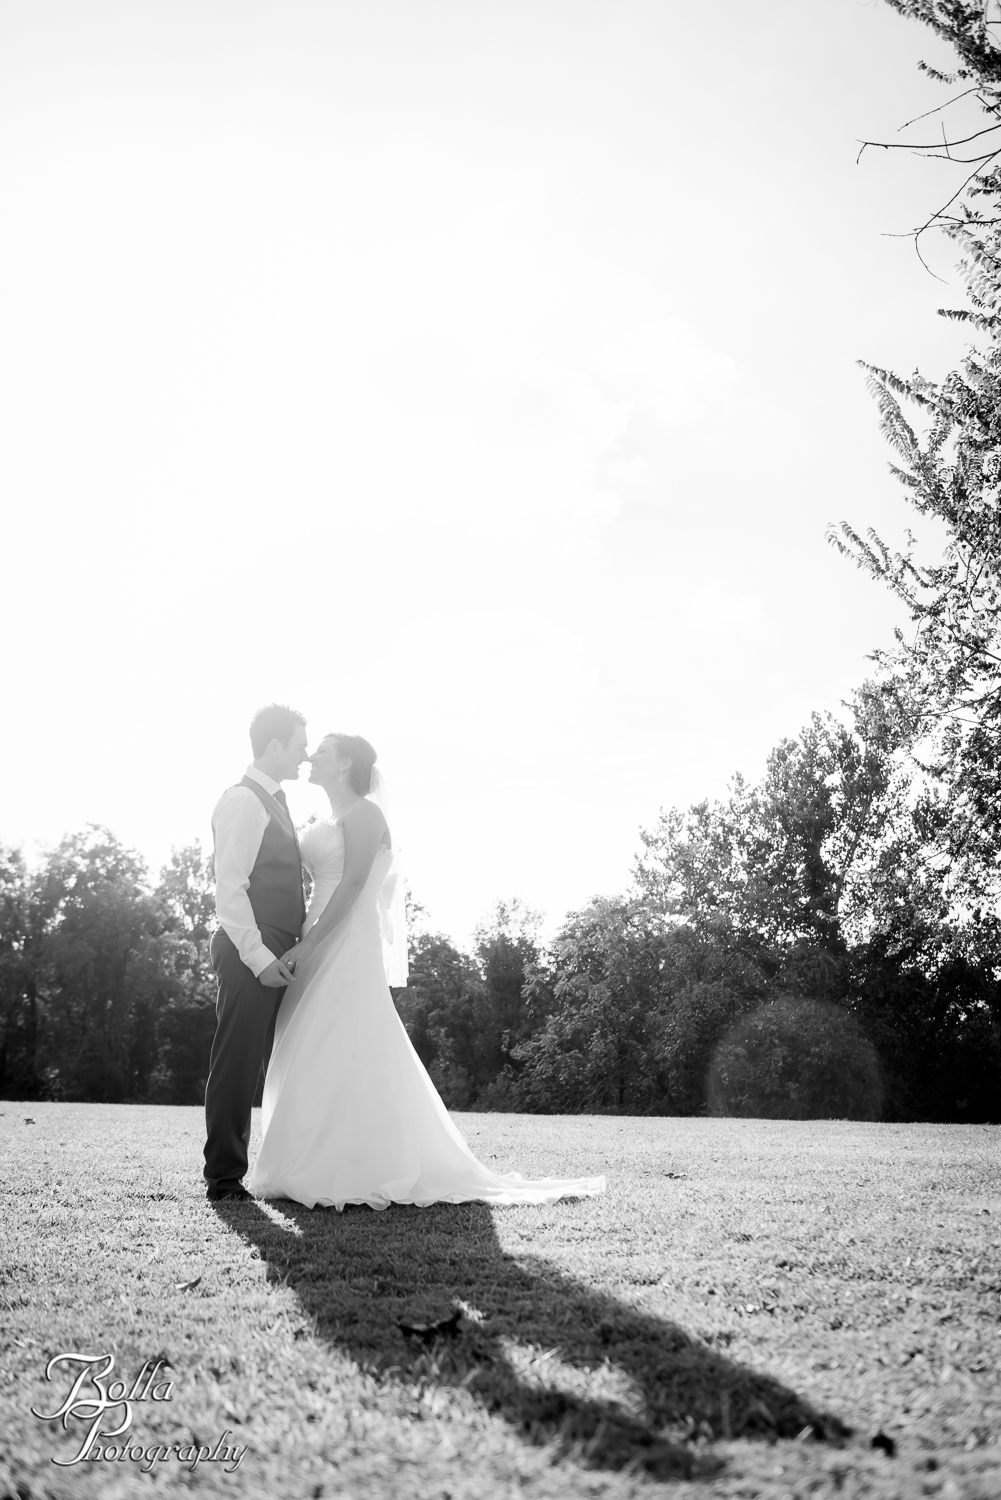 Bolla_Photography_St_Louis_wedding_photographer-0355.jpg